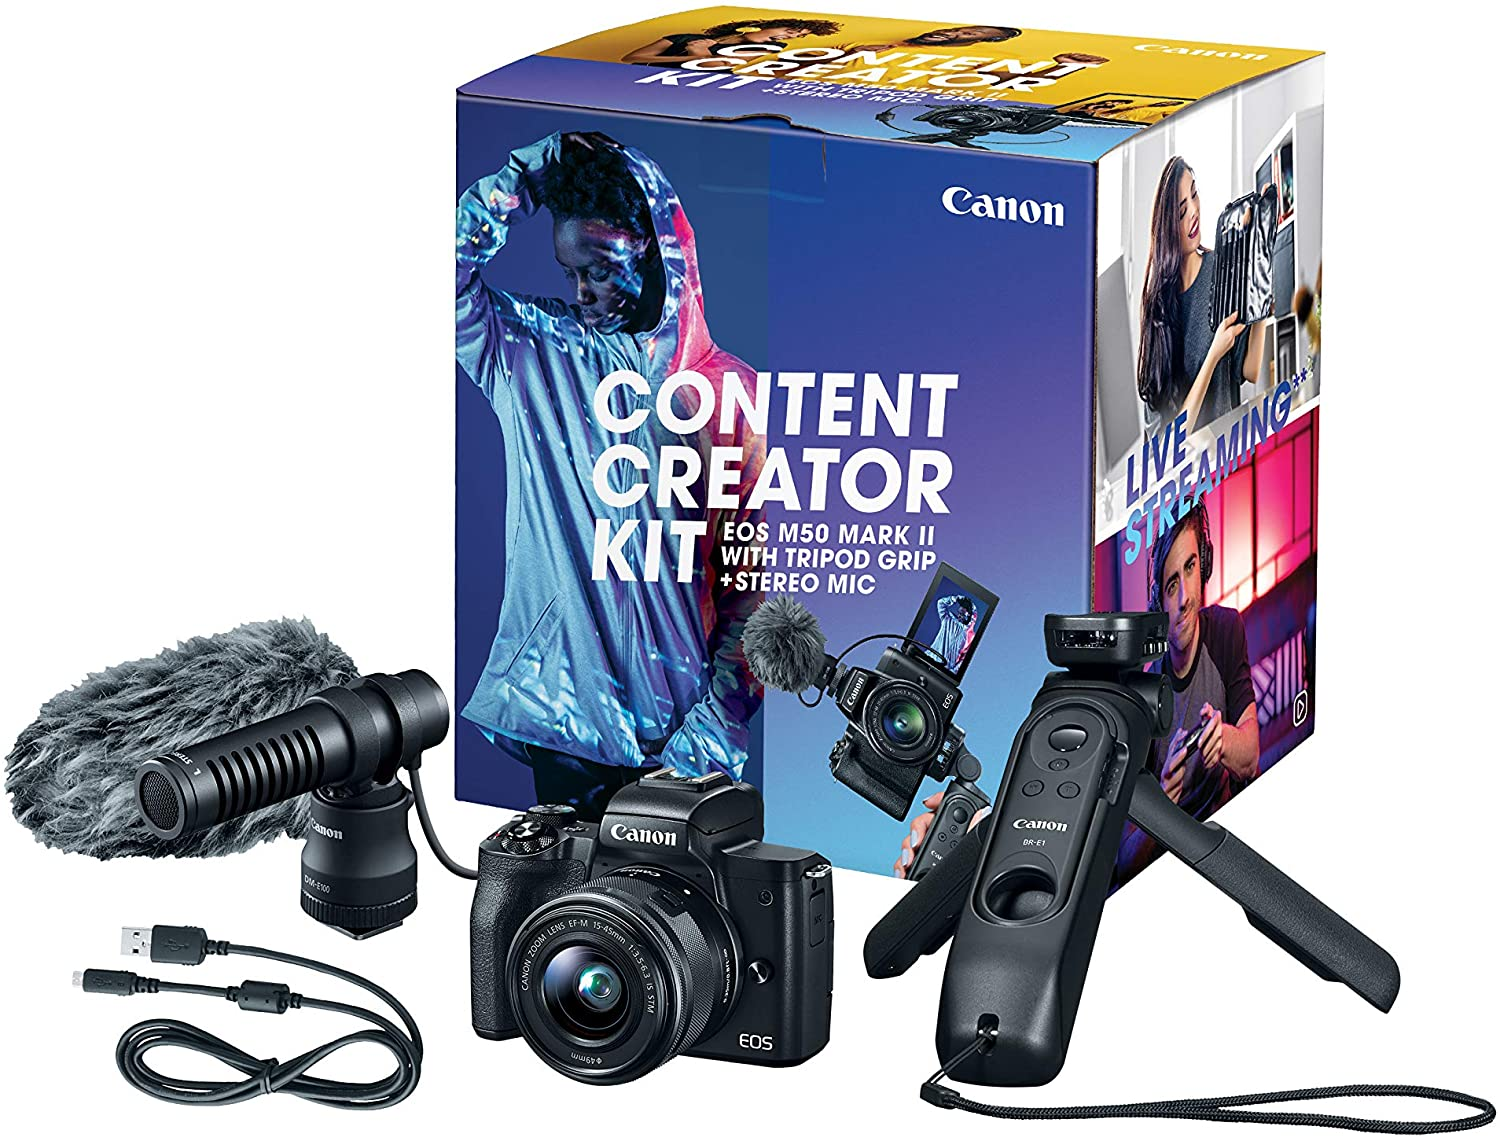 Canon EOS M50 Mark II Content Creator Kit, Mirrorless 4K Vlogging Camera Kit Includes EF-M 15-45mm Lens, Tripod Grip, Stereo Microphone